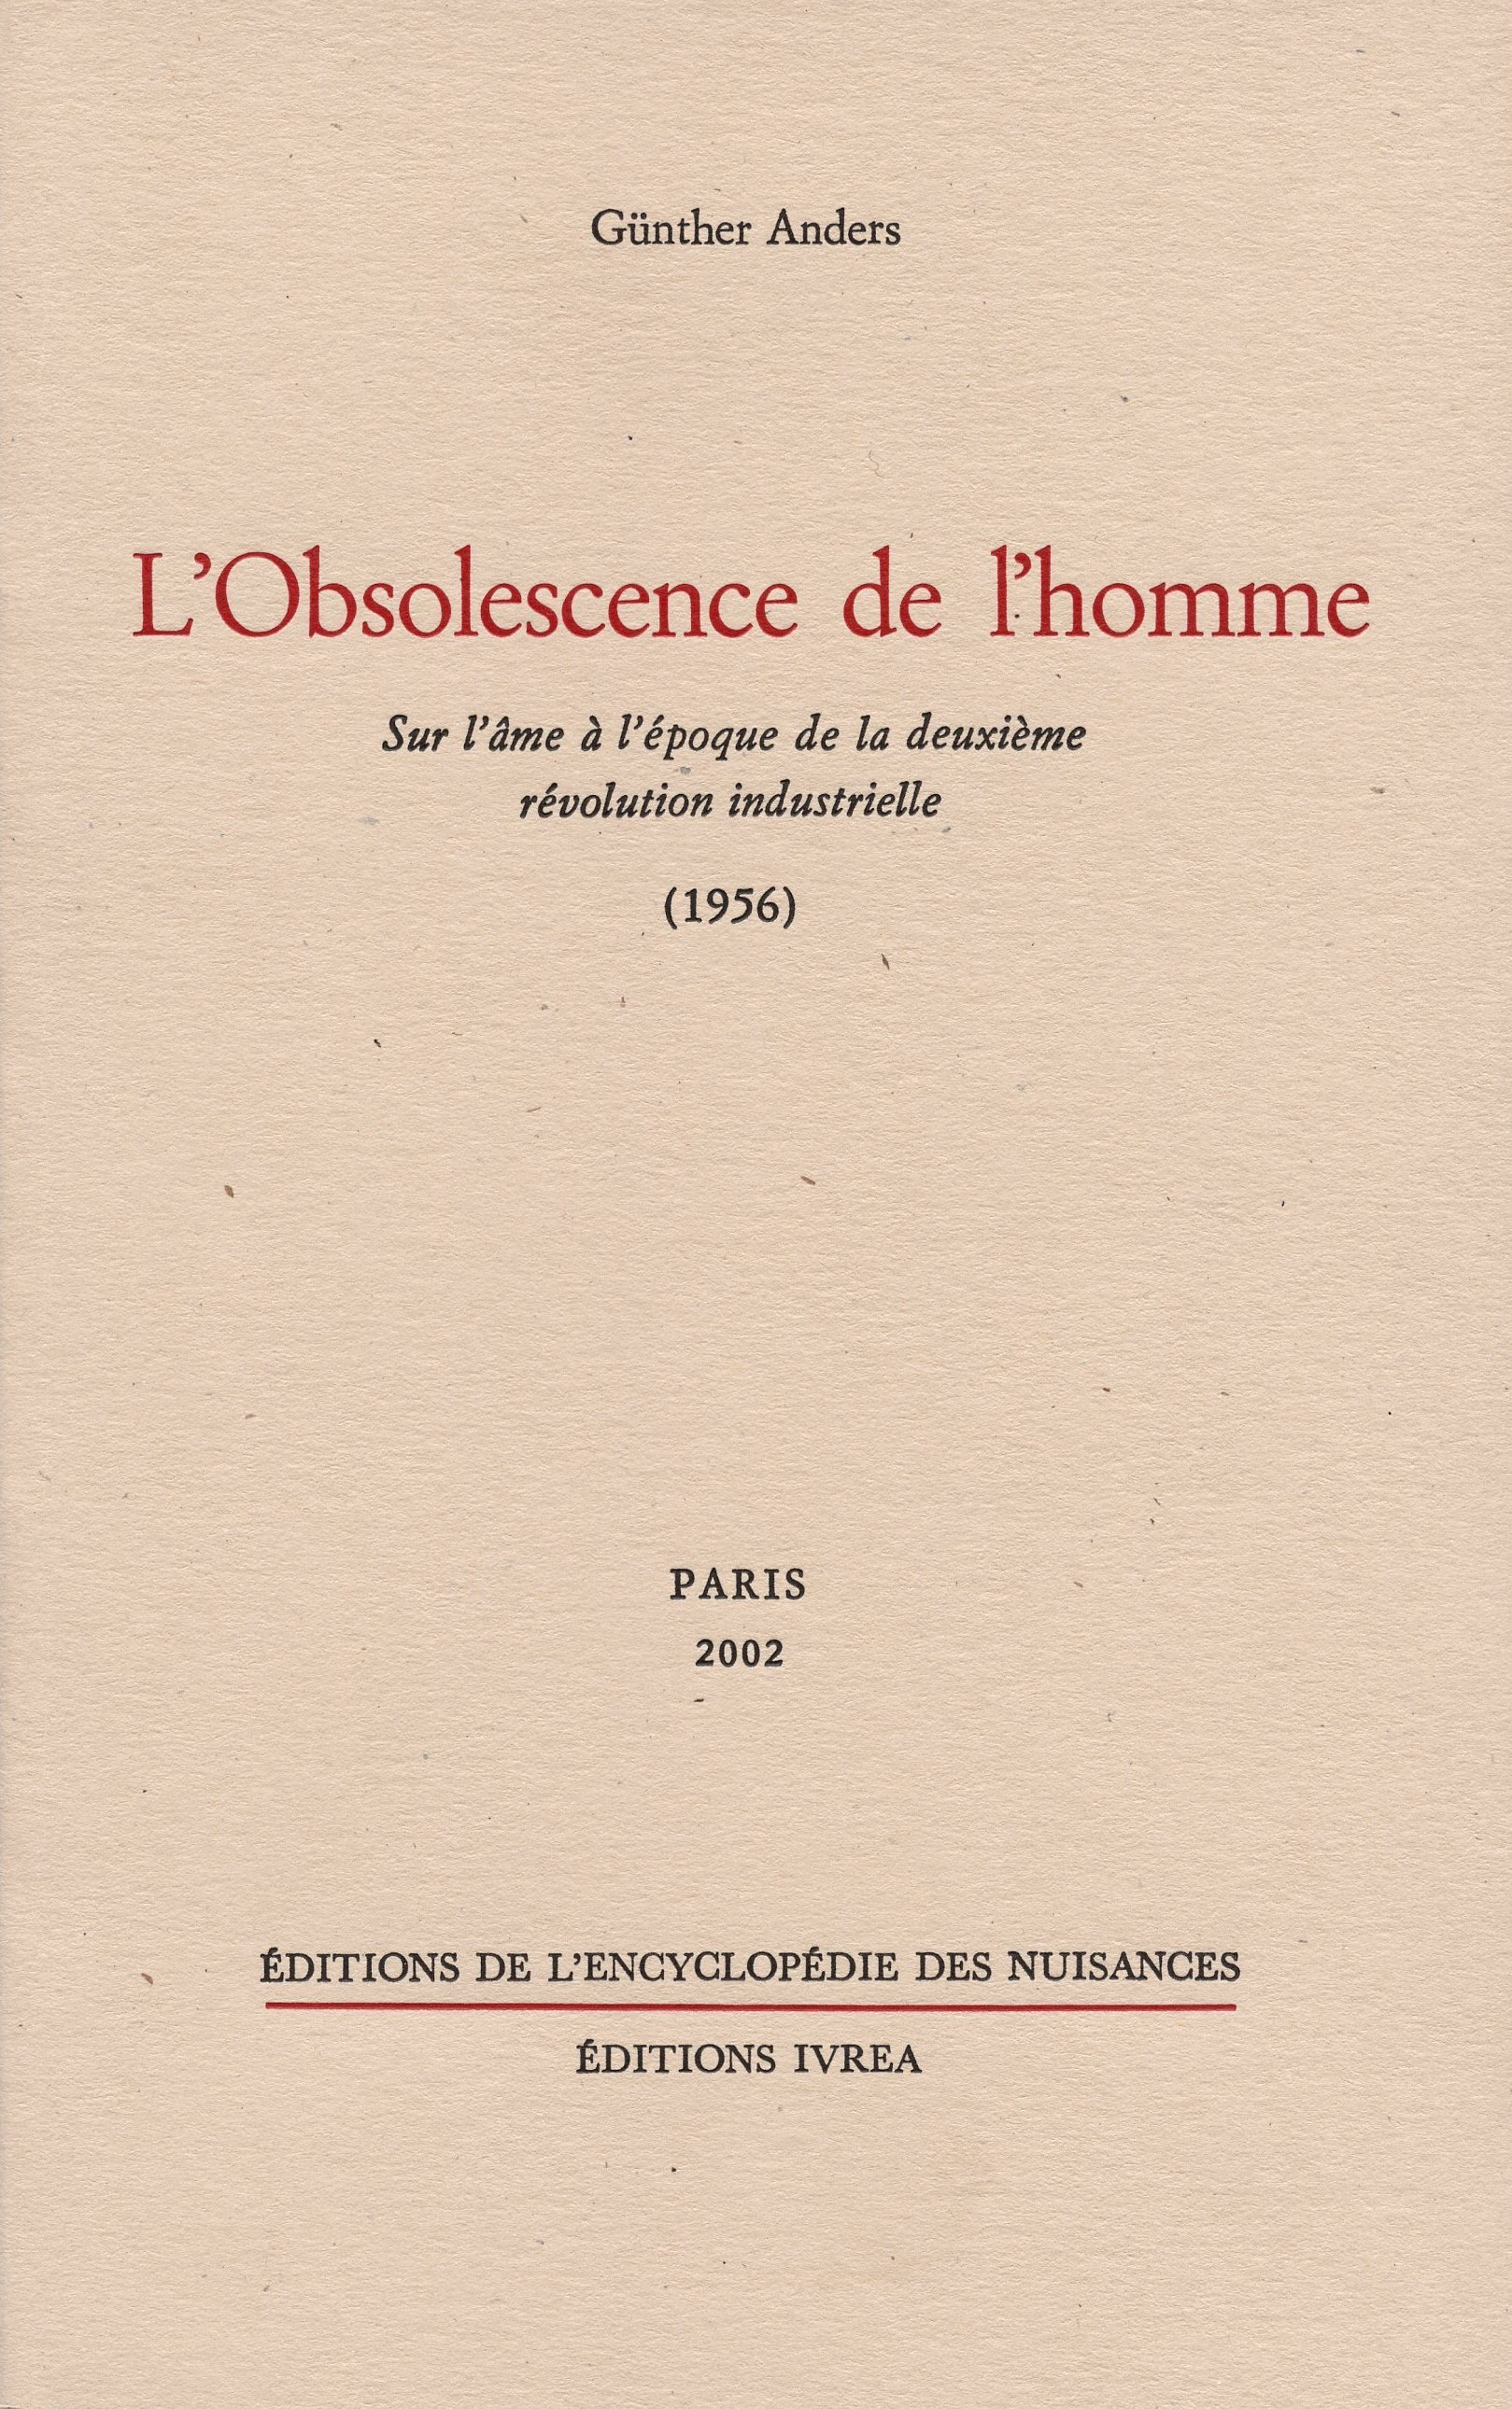 OBSOLESCENCE DE L'HOMME (L')